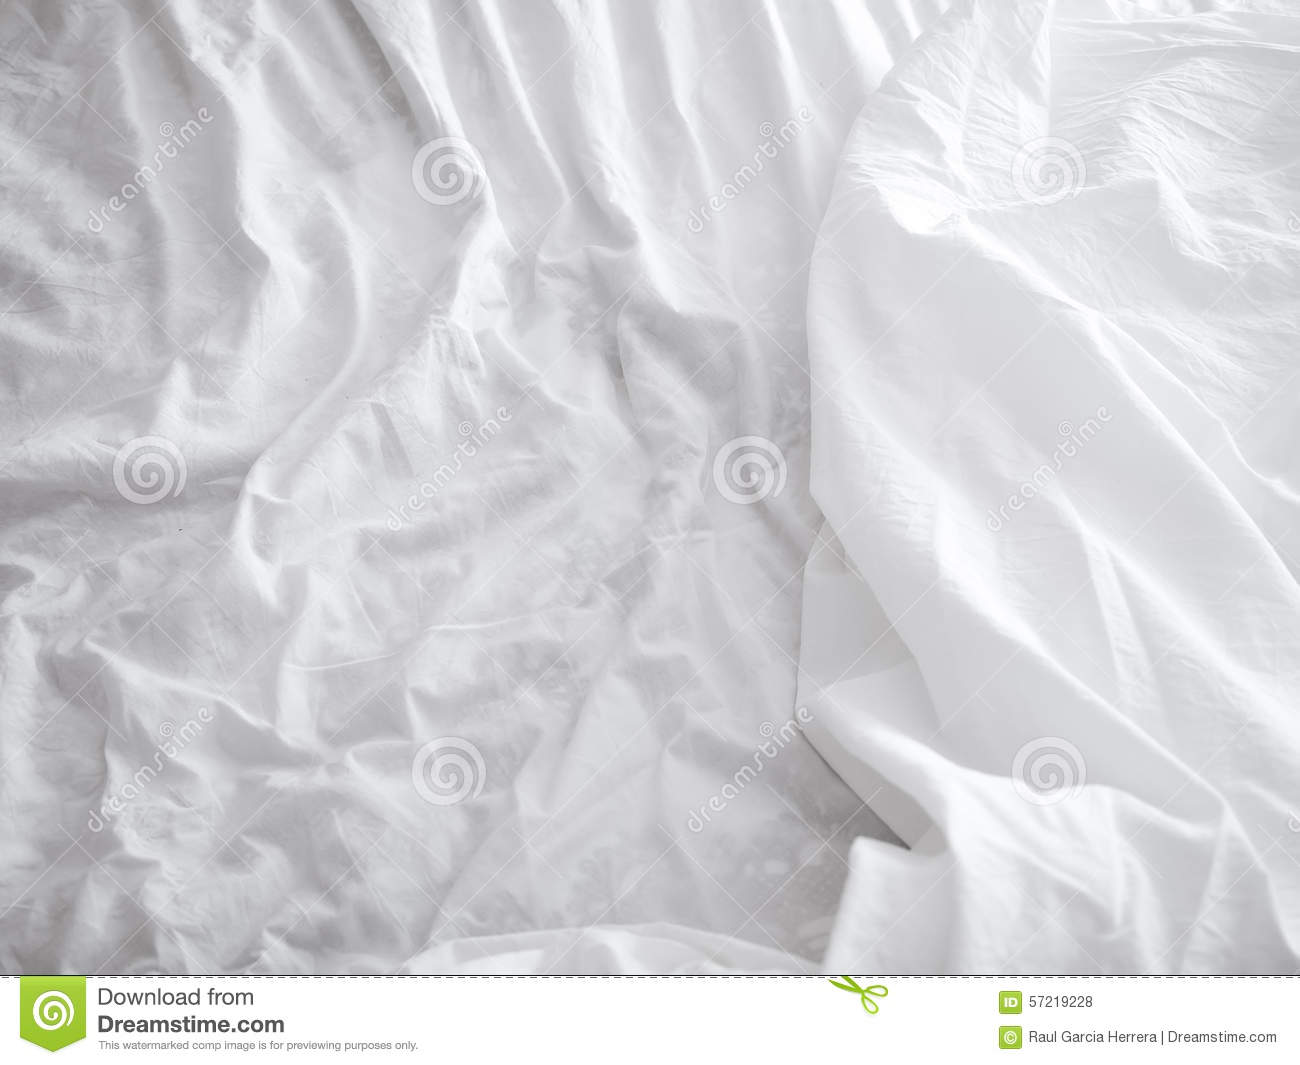 white bed sheets texture.  White Download White Bed Sheets Background And Texture Stock Photo  Image Of  Elegant Bedding Inside Dreamstimecom